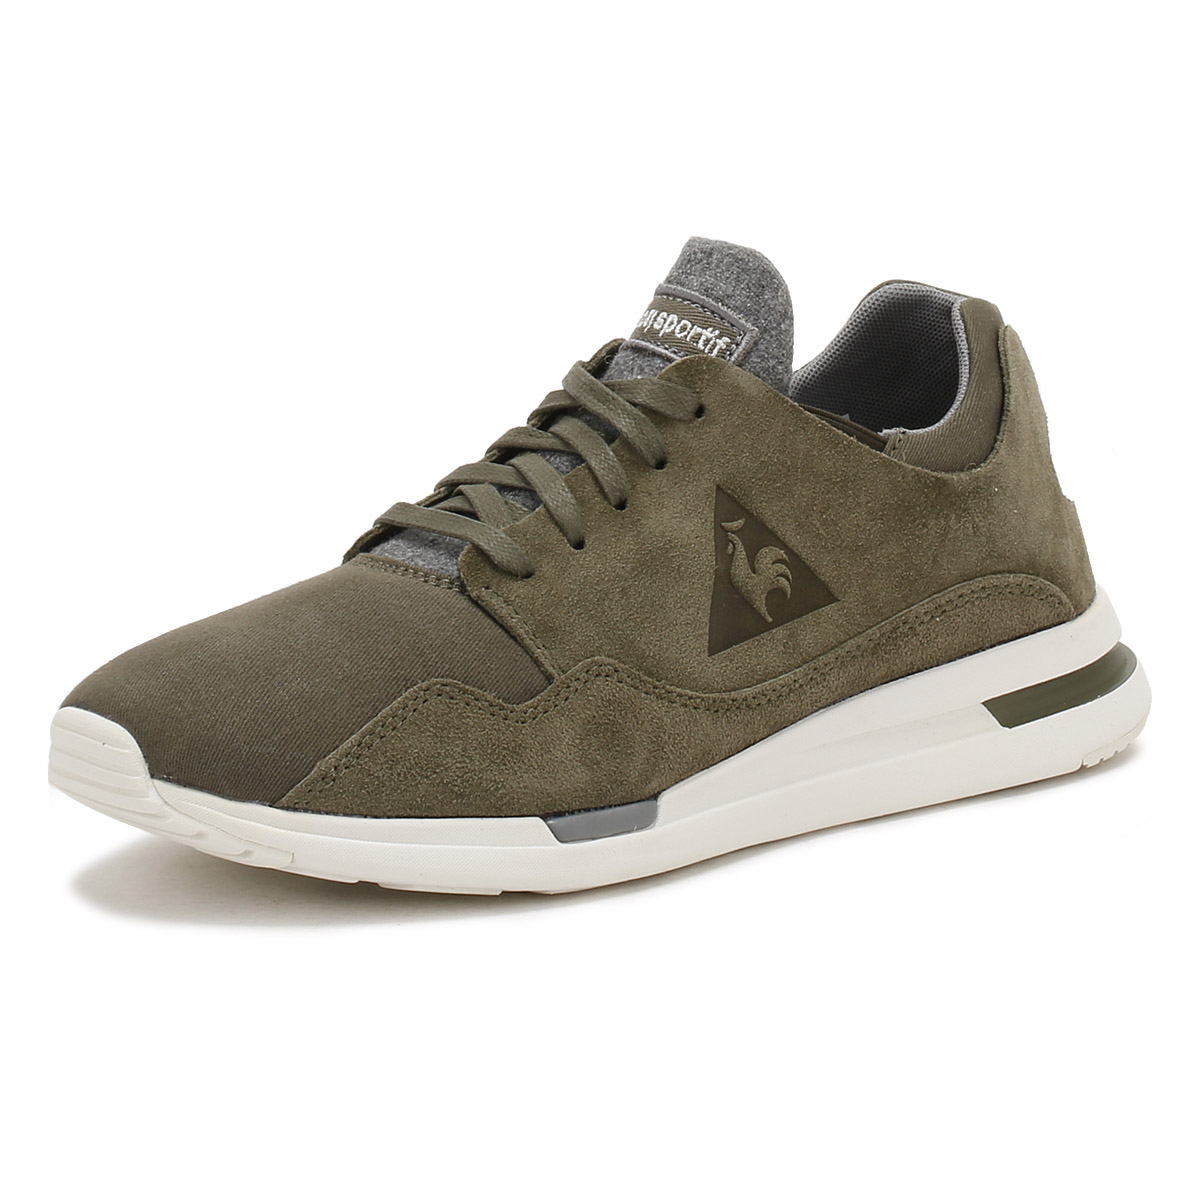 9e4f03da900f Details about Le Coq Sportif Mens Olive Night Green LCS R Pure Trainers  Suede Canvas Shoes